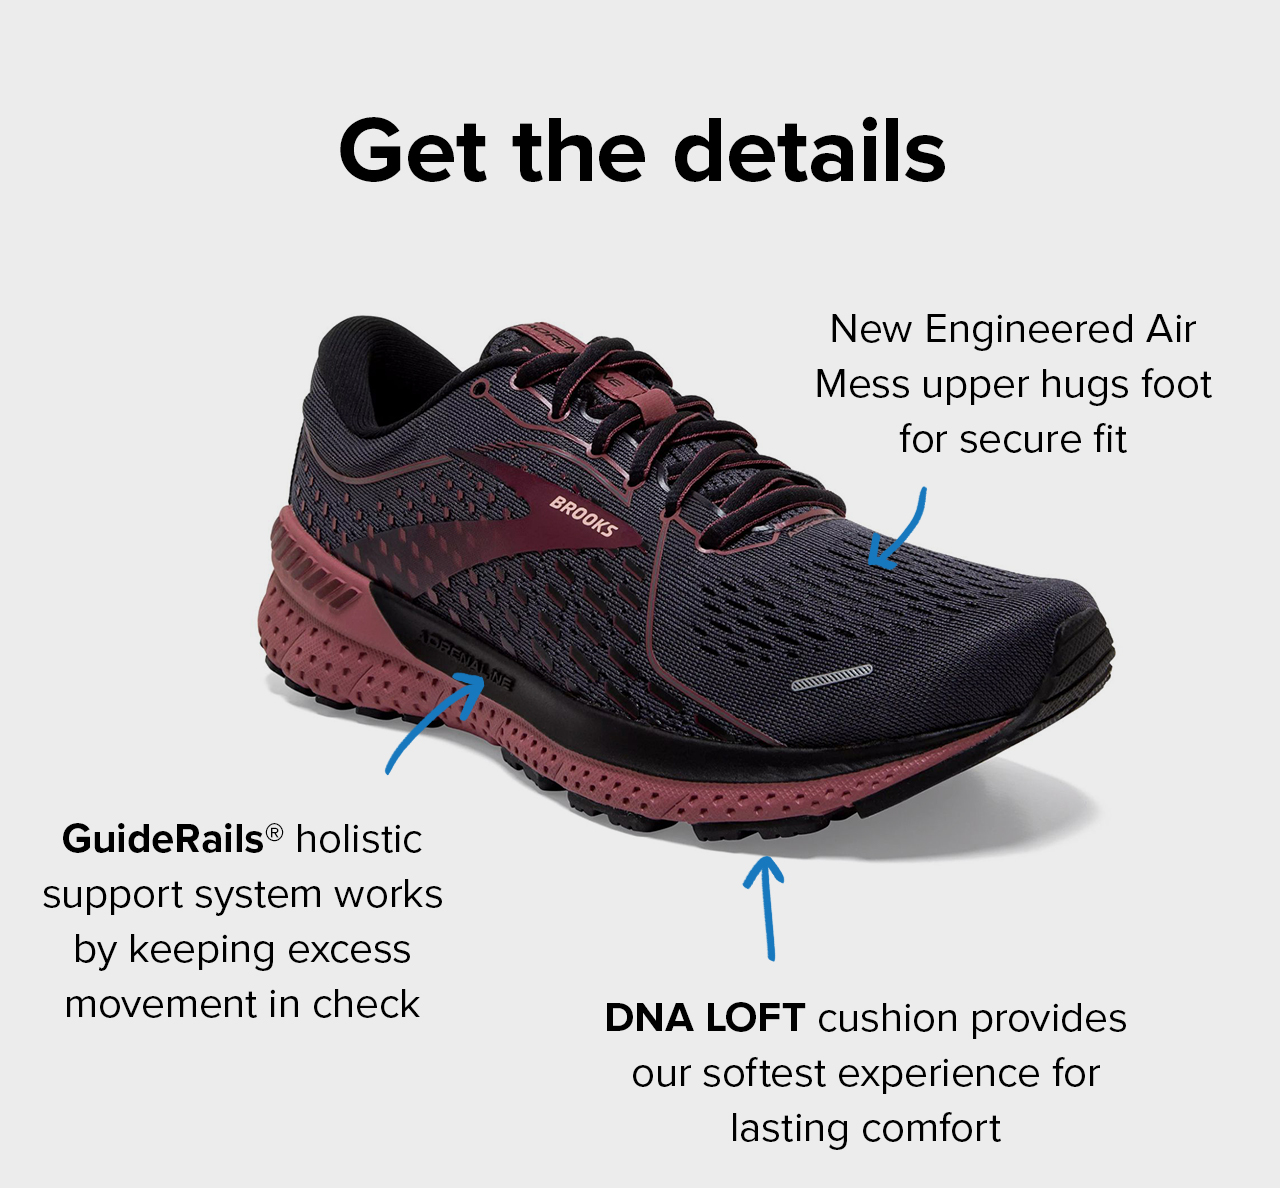 Get the details   New Engineered Air Mess upper hugs foot for secure fit   GuideRails holistic support system works by keeping excess movement in check   DNA Loft cushion provides our softest experience for lasting comfort